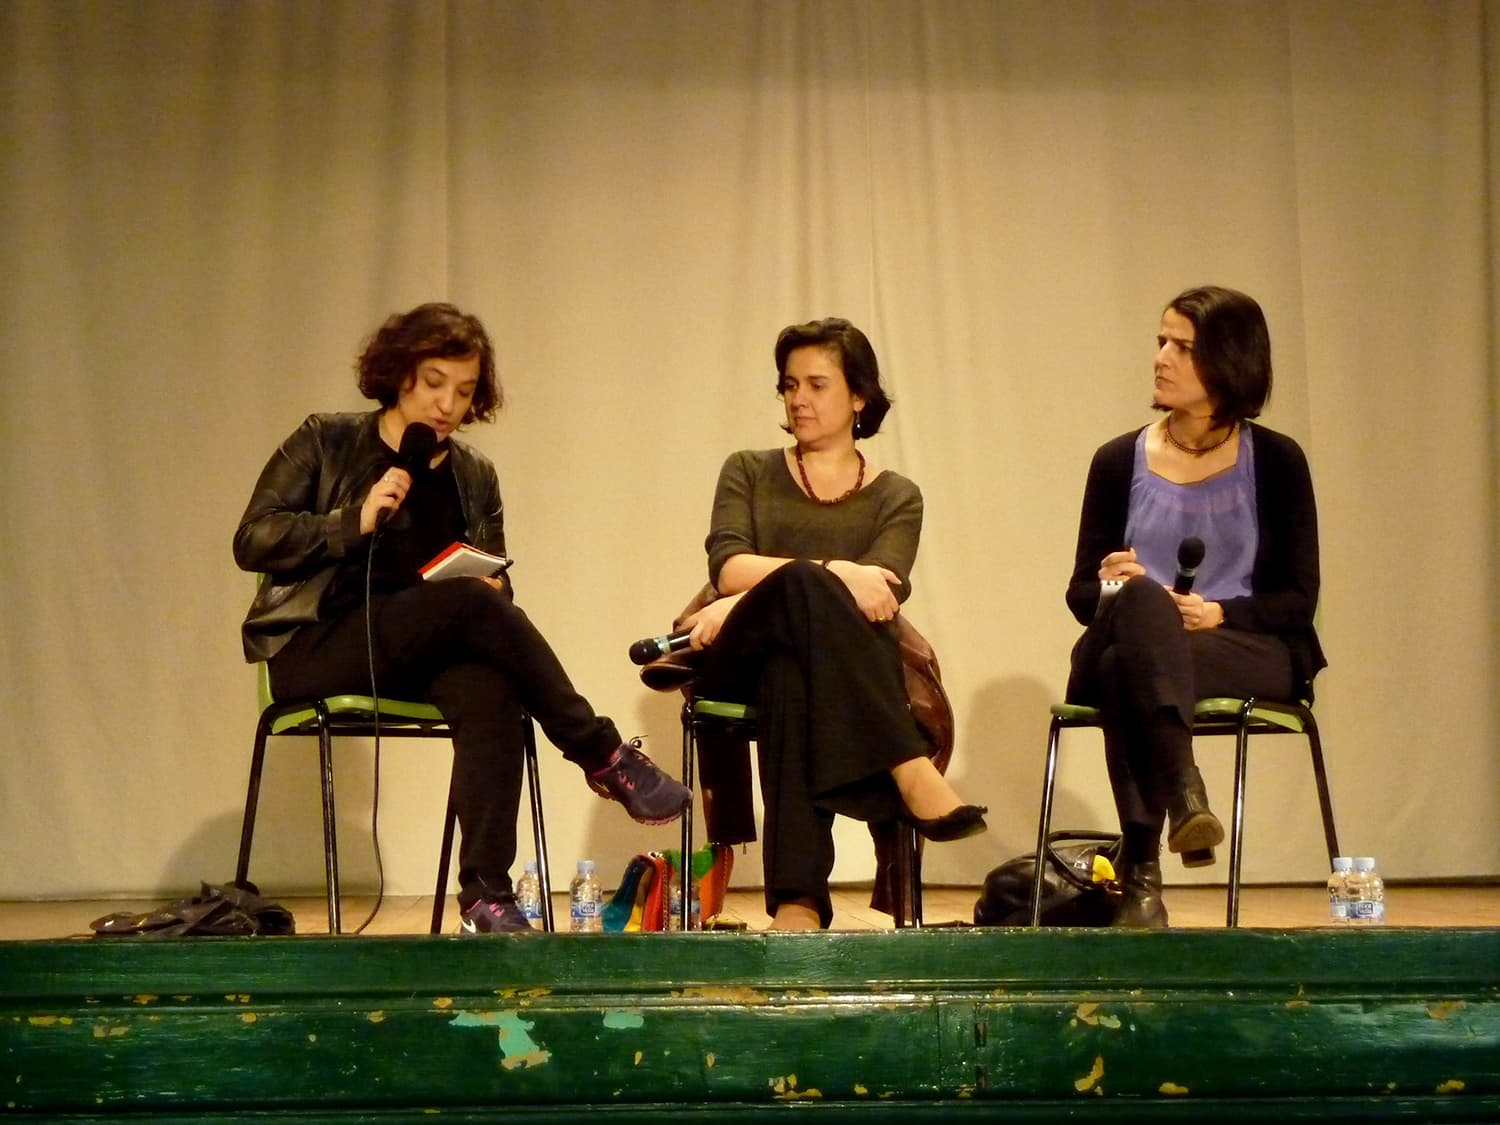 Kamila Shamsie, accompanied by Ana Ballesteros and Judit Carrera, meets students from El Raval at the secondary institute Miquel Tarradell in a talk on writing and Pakistan. -Photo by author